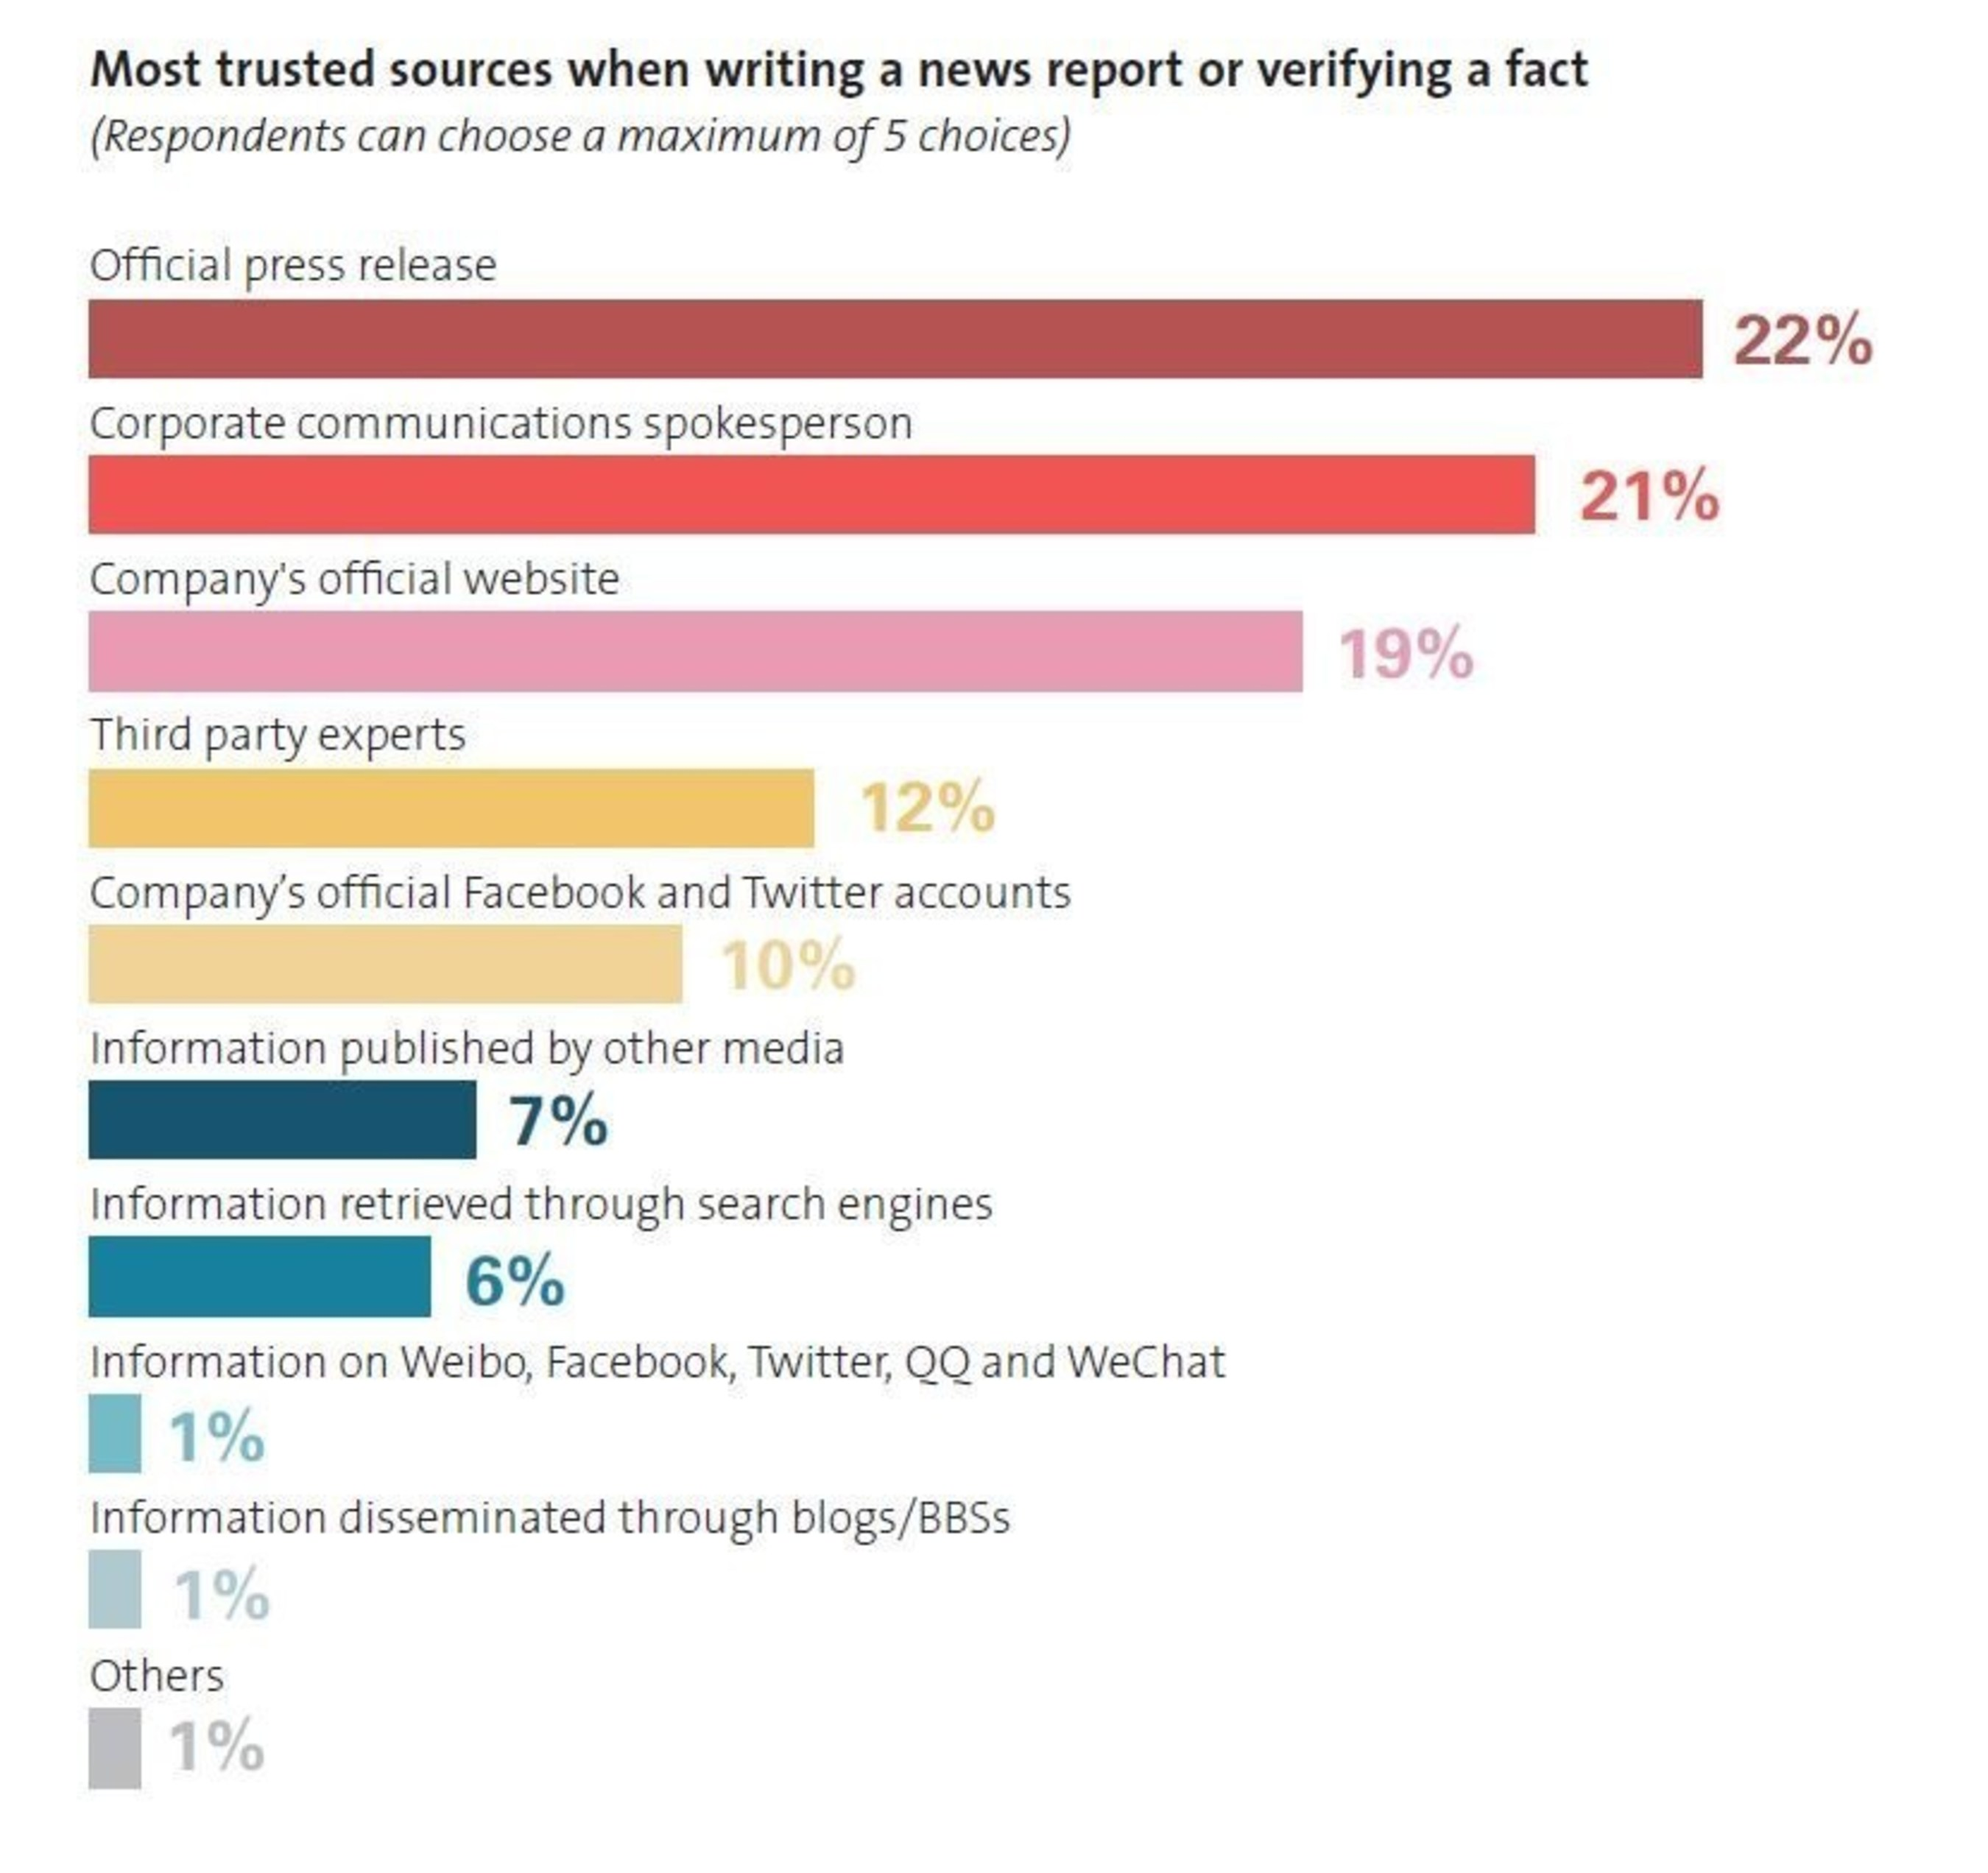 Most trusted sources when writing a news report or verifying fact